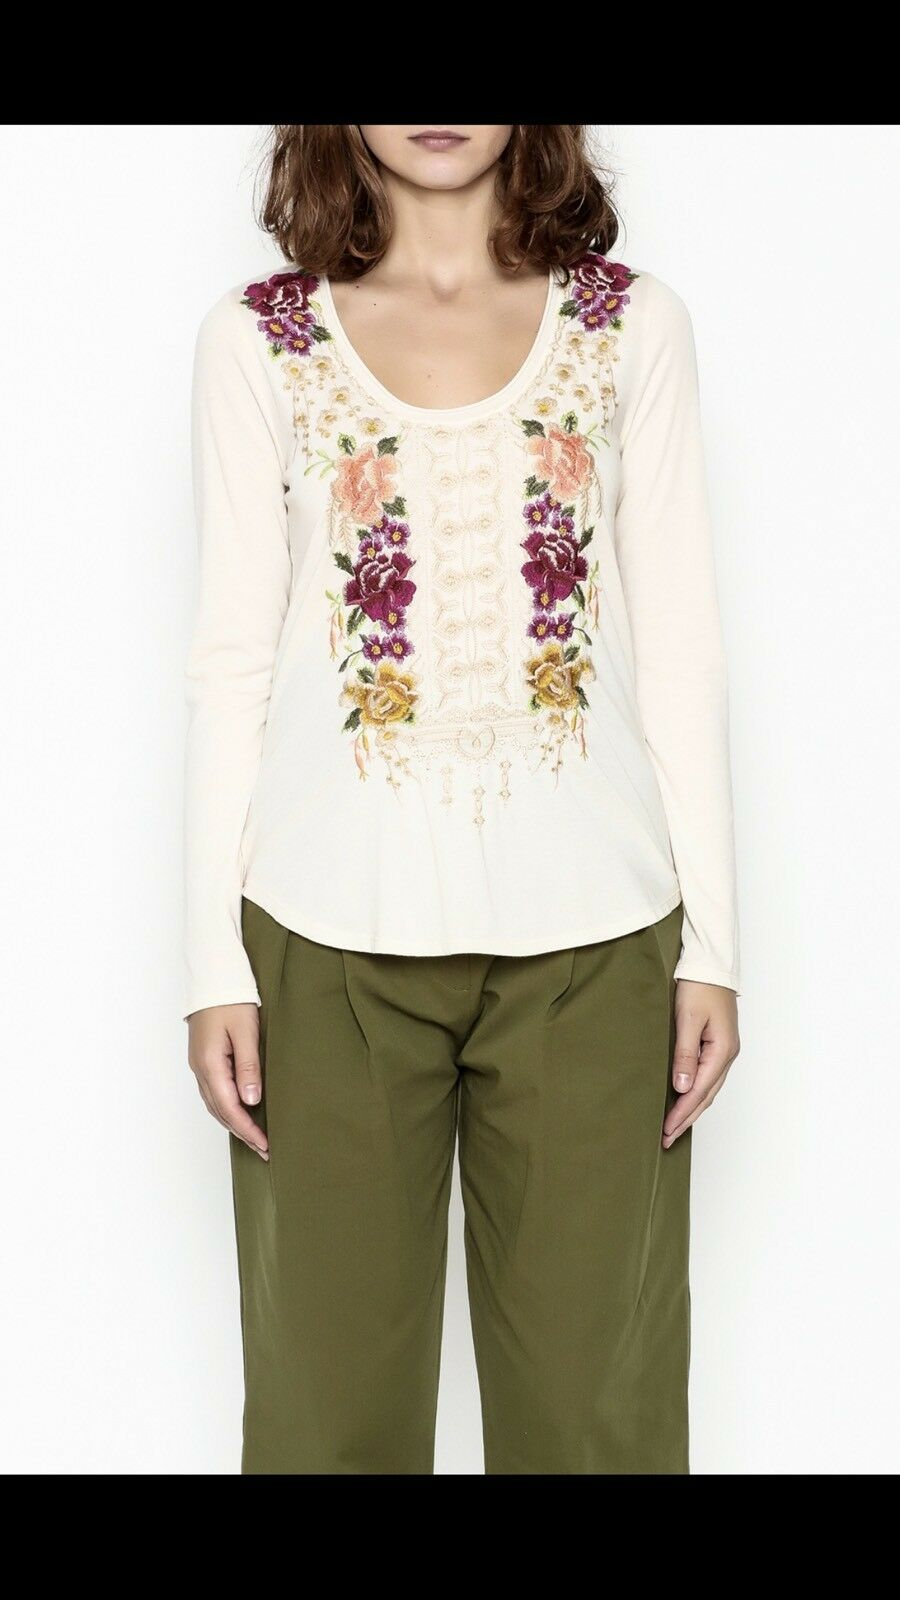 NWT Johnny Was Flores Scoop Neck Embroiderot Lange Sleeve Tee Hemd SZ XL